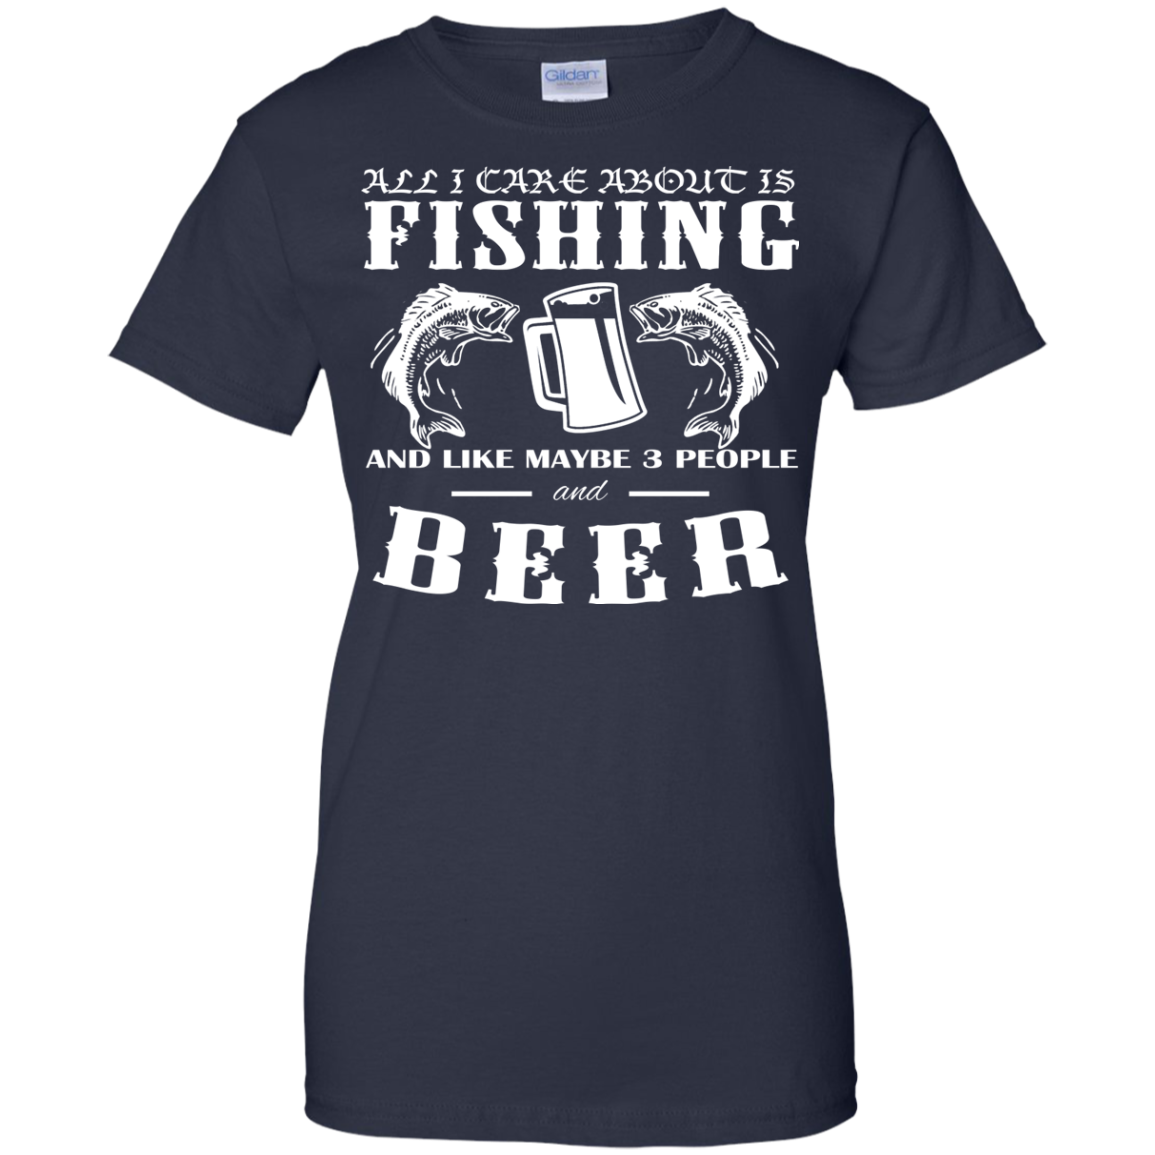 All I Care About Is Fishing And Like Maybe 3 People And Beer Ladies Tees